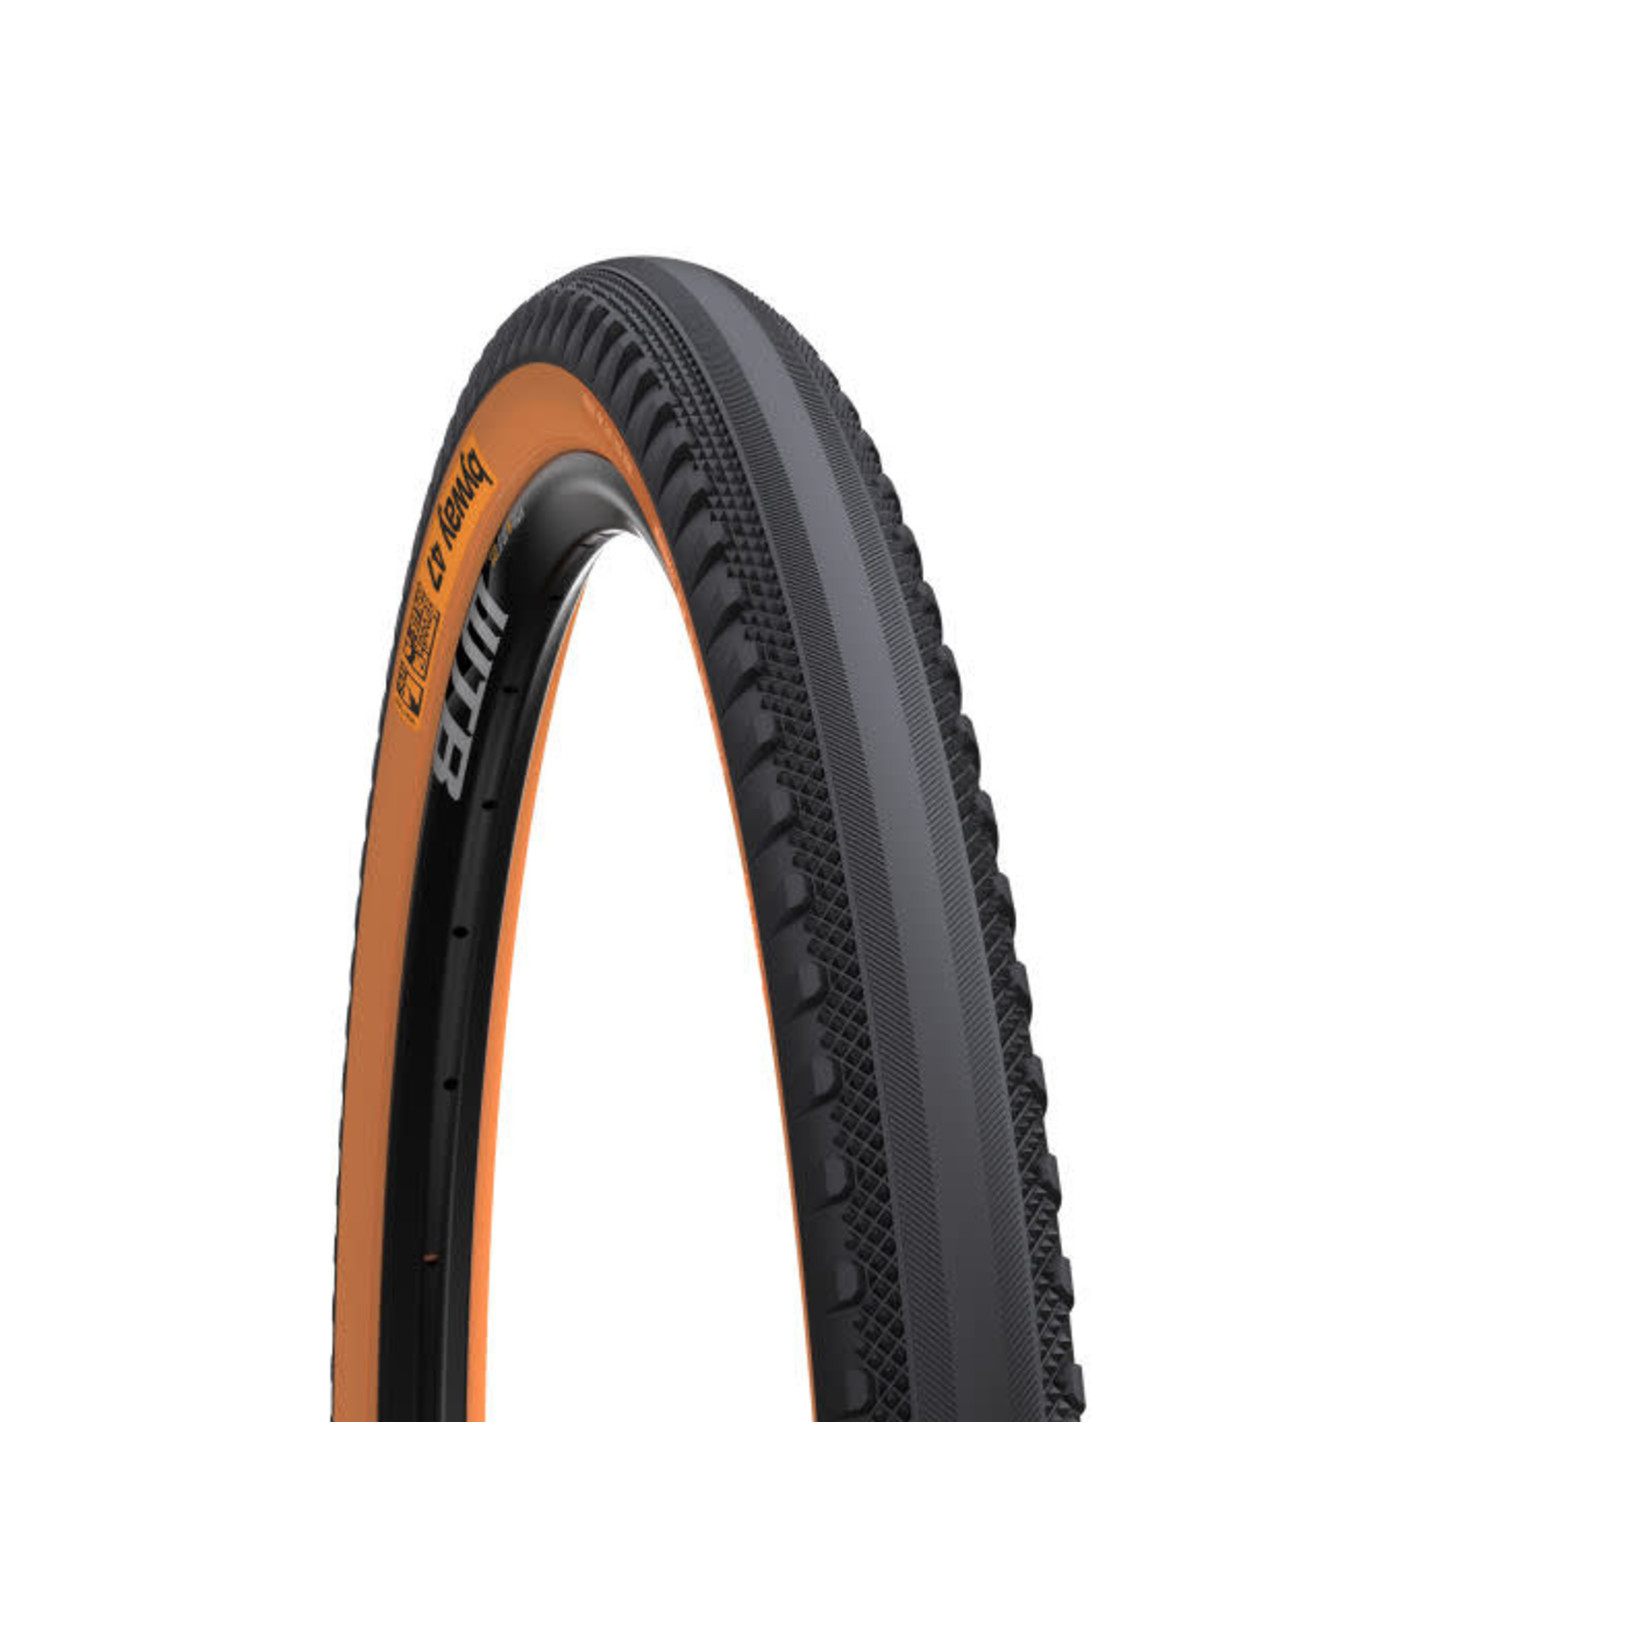 BY WAY ByWay -  650 x 47c Road TCS Tire nero/marrone